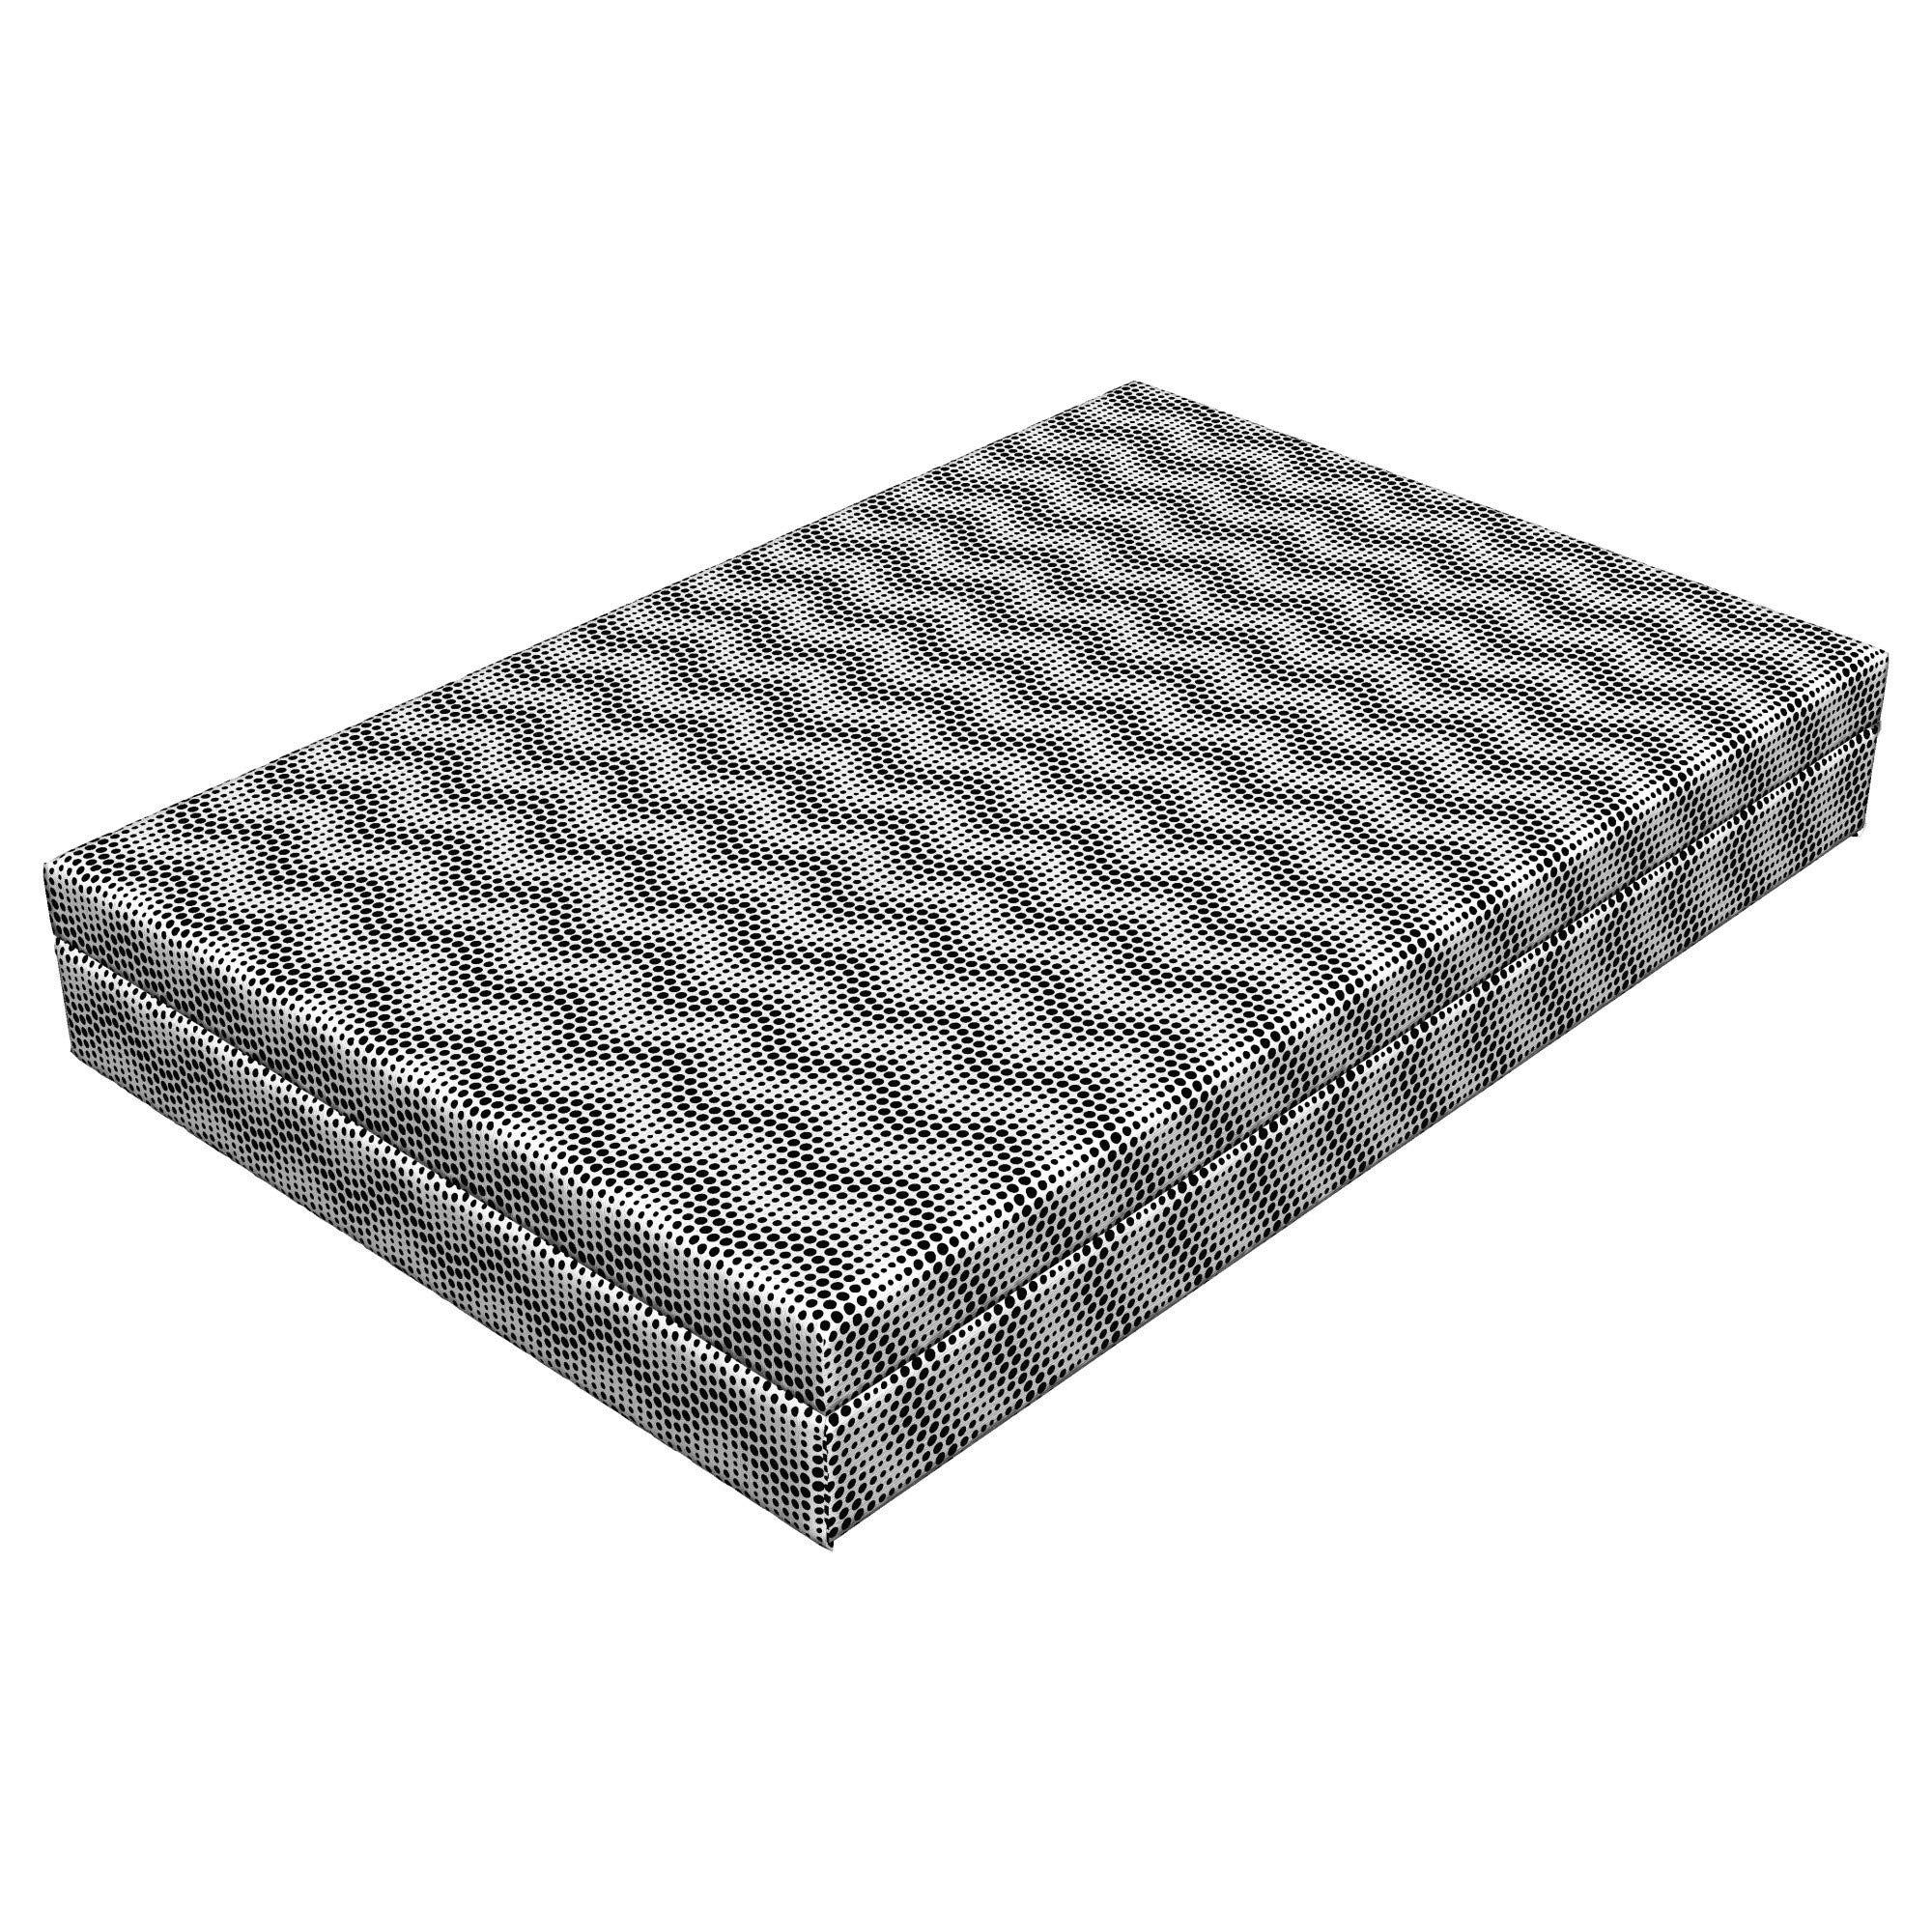 Lunarable Contemporary Dog Bed, Halftone Horizontal Wavy Dotted Lines Pattern Abstract Oval Design Creative, Durable Washable Mat with Decorative Fabric Cover, 48'' x 32'' x 6'', Black White